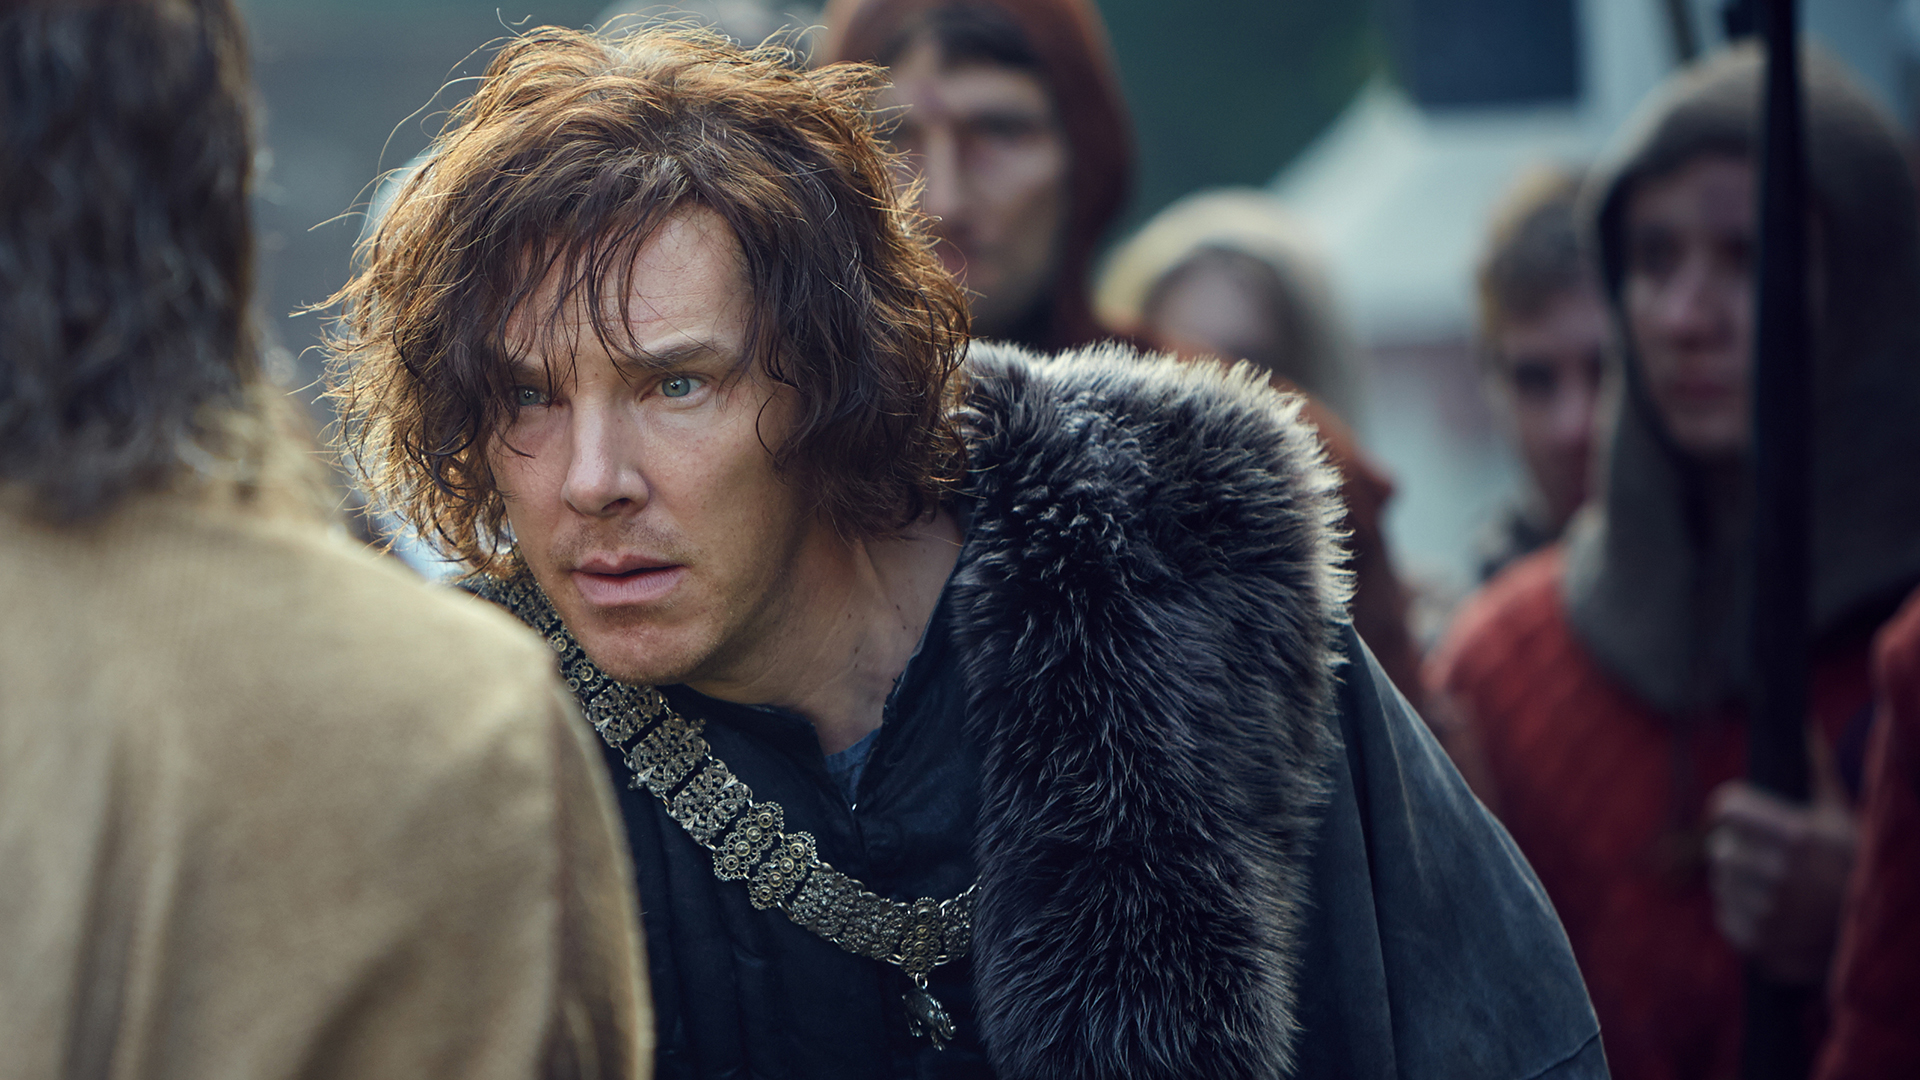 December programming highlights: 'The Hollow Crown,' 'Live Here,' Joshua Bell, more